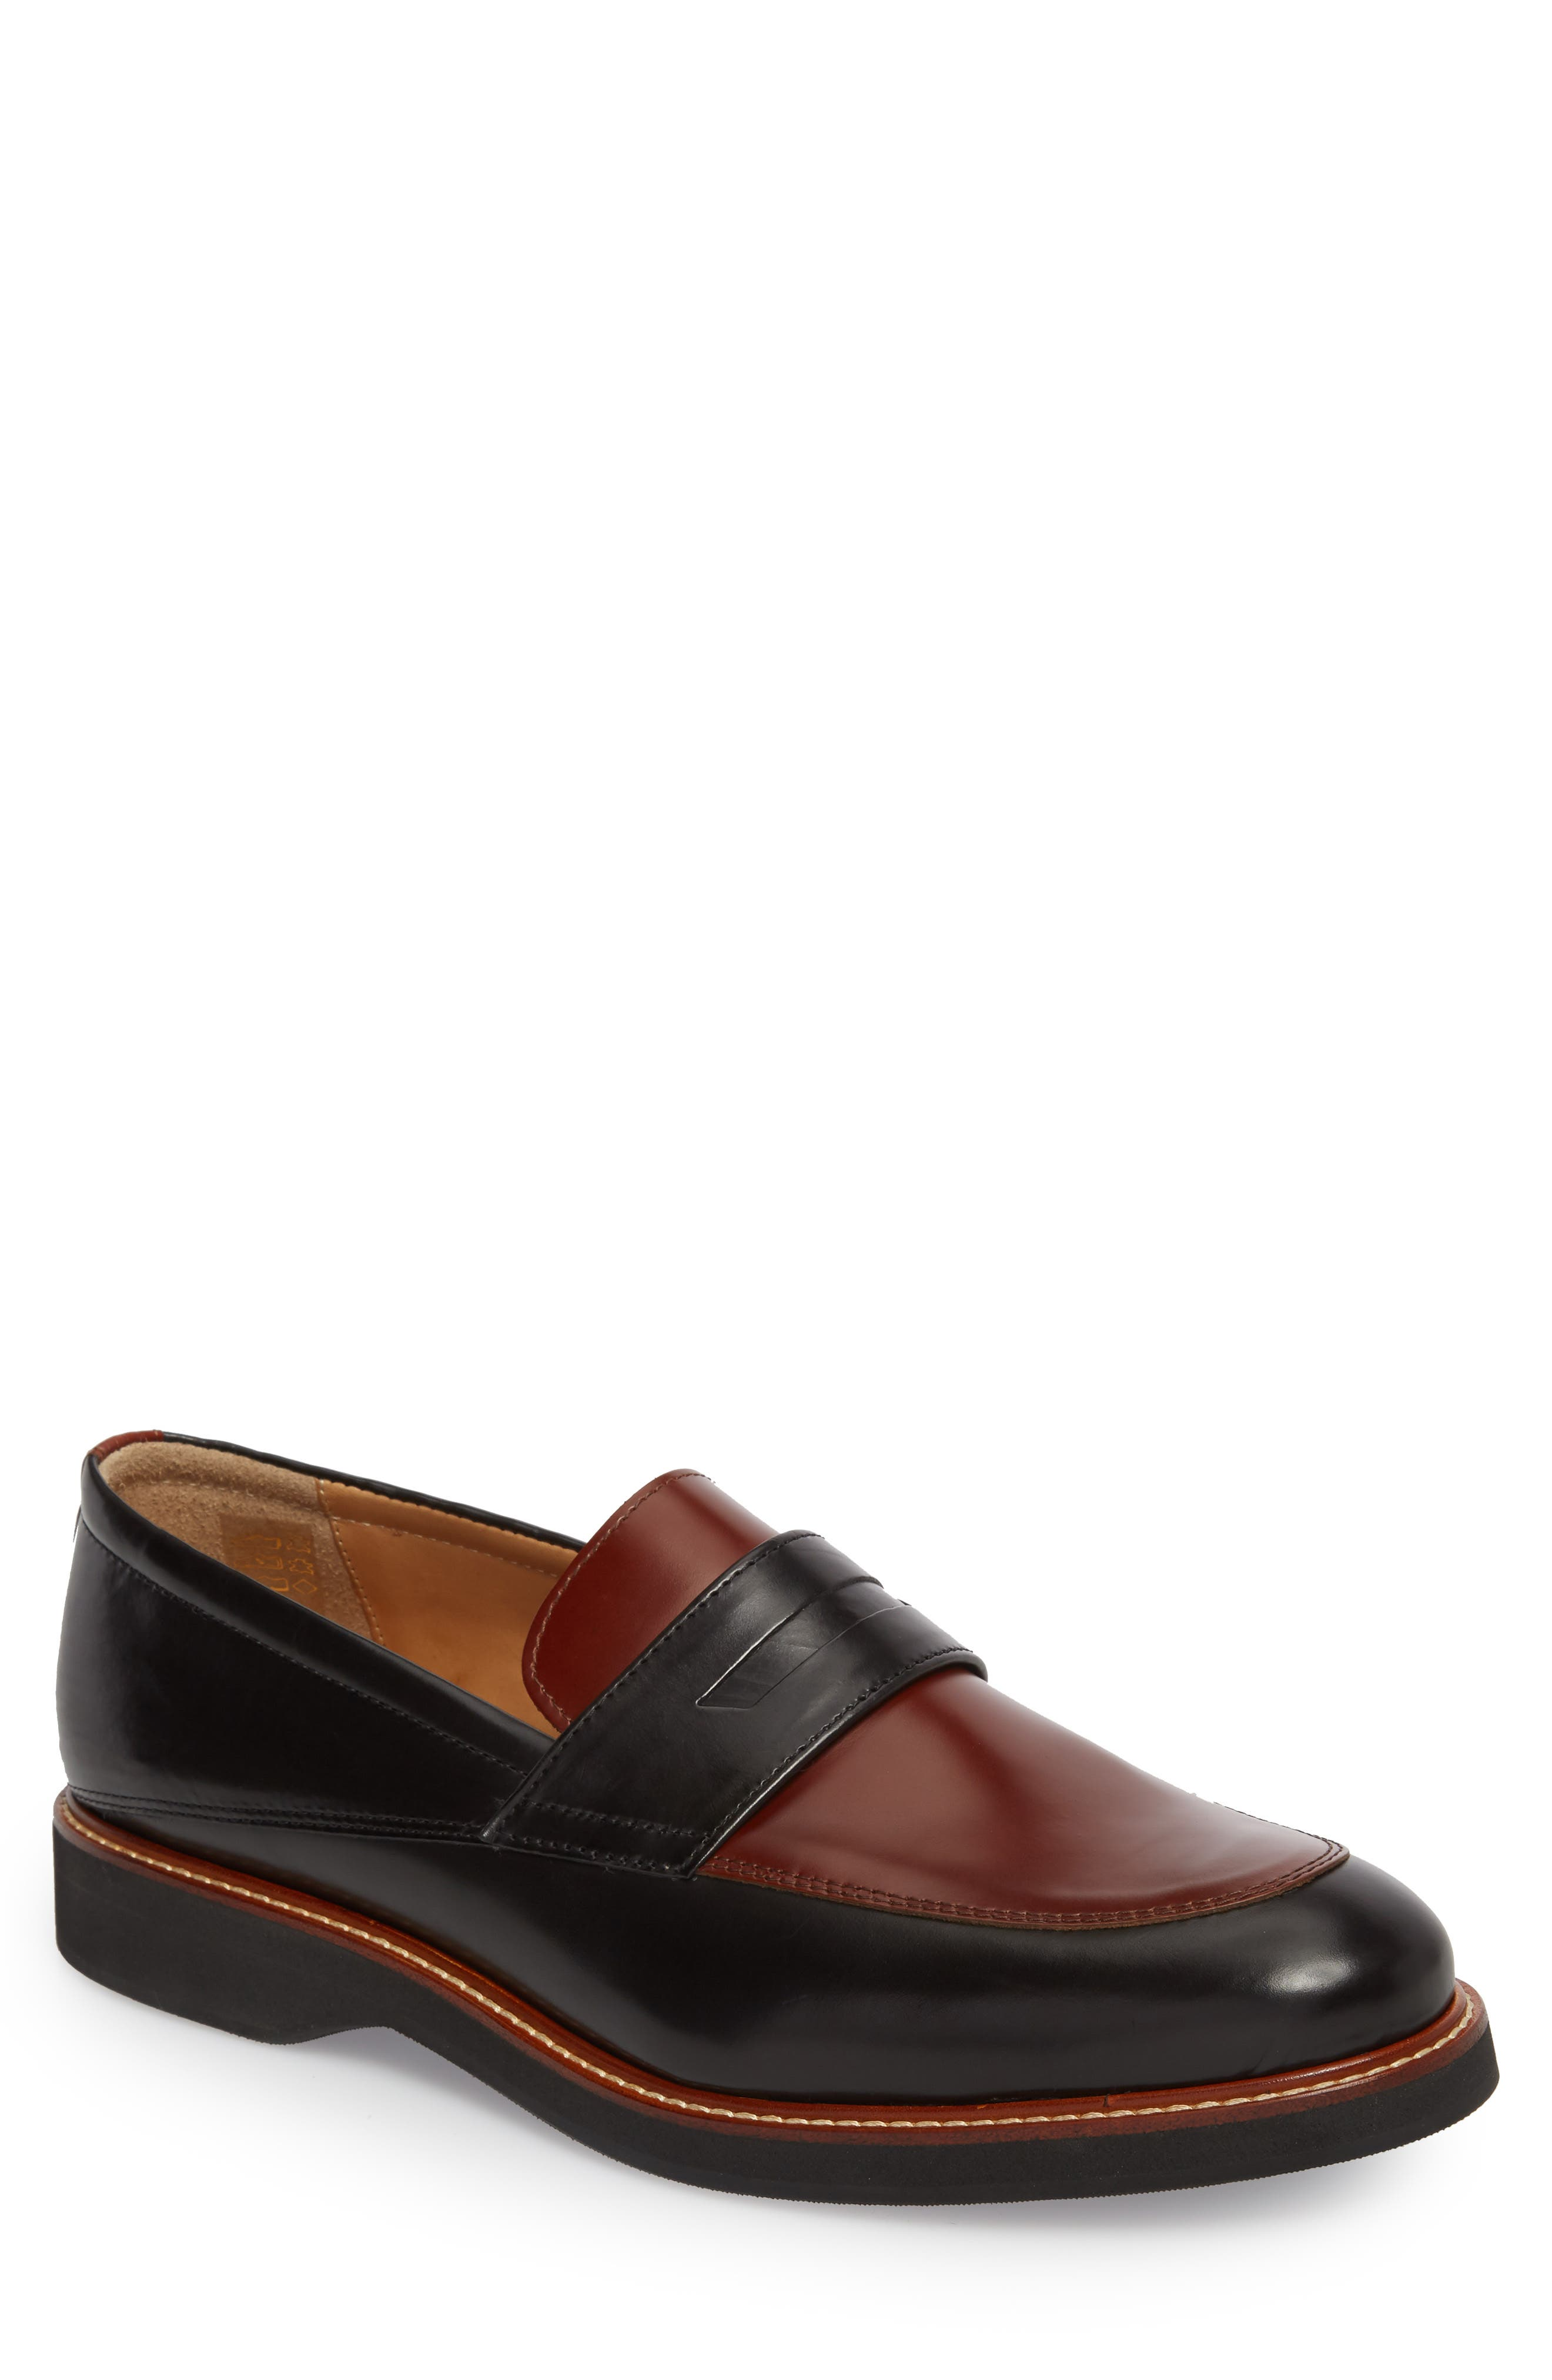 Marcus Penny Loafer,                         Main,                         color, Black/ Cognac